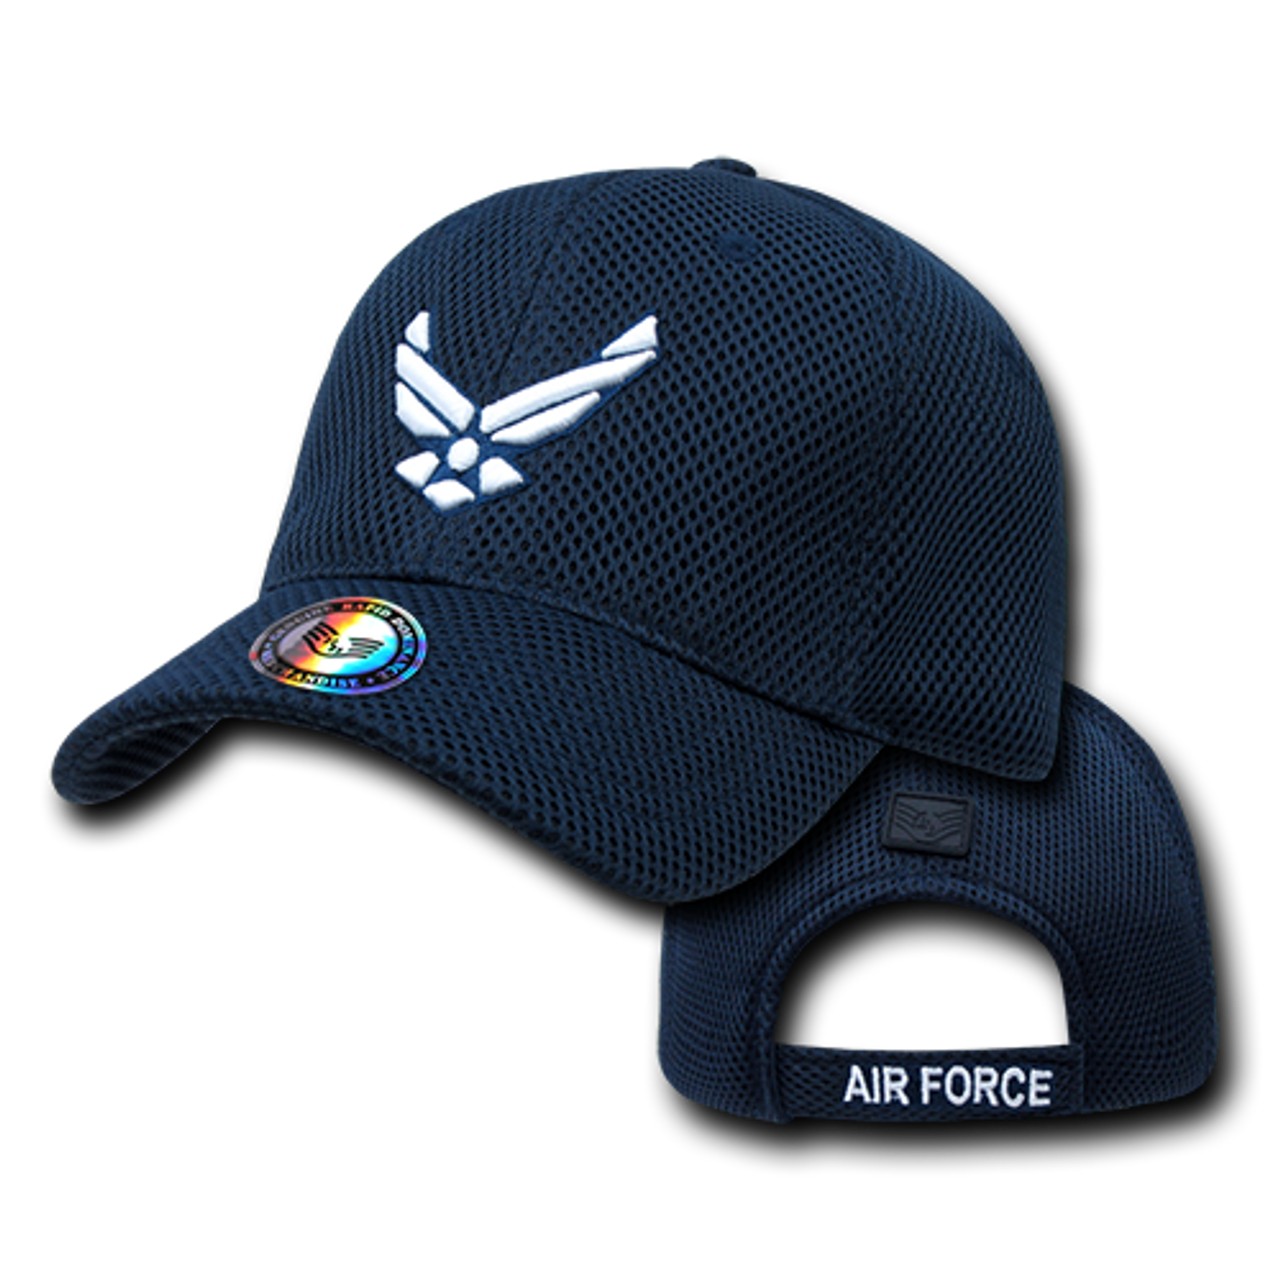 26689a47 ... S002 - Air Mesh Military Cap - U.S. Air Force - Navy ...